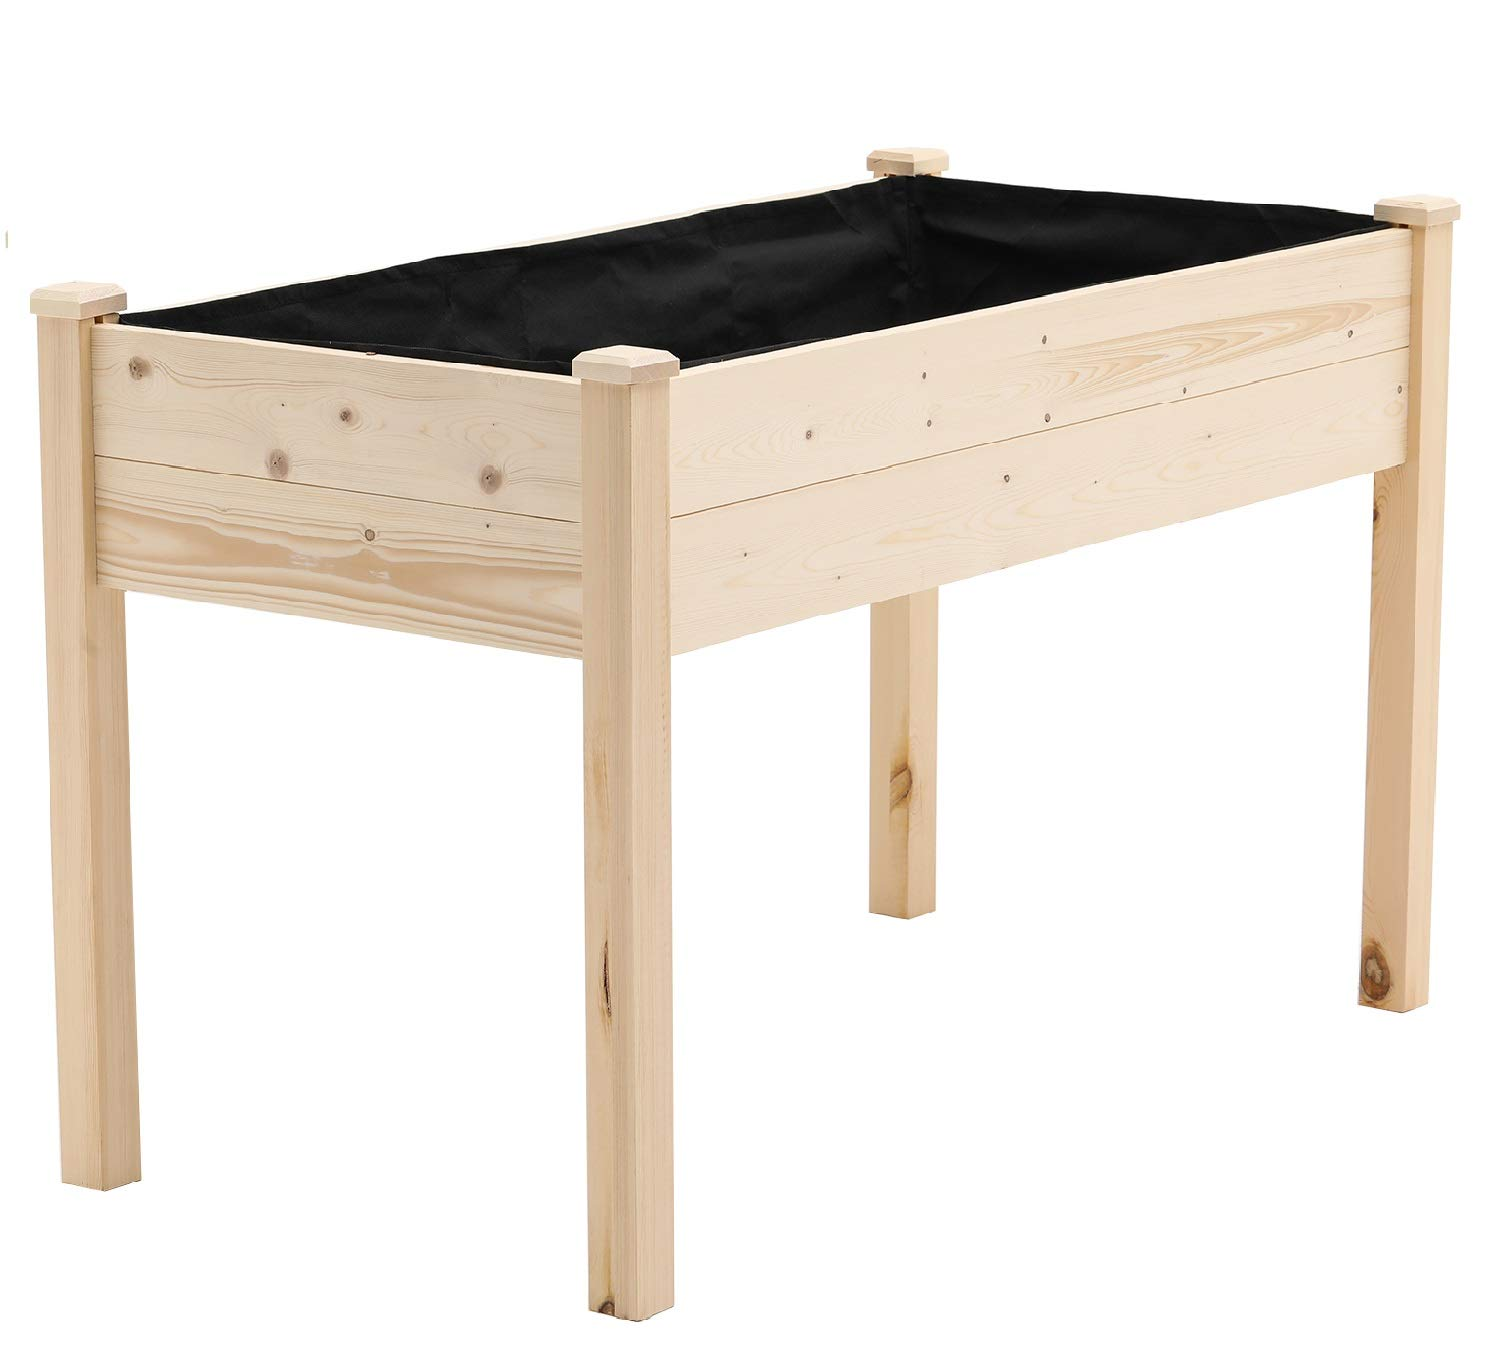 SOLAURA Outdoor 4 ft Wooden Raised Garden Bed Elevated Planter Box Kit Grow Vegetable Flower Herb Gardening, Naturally